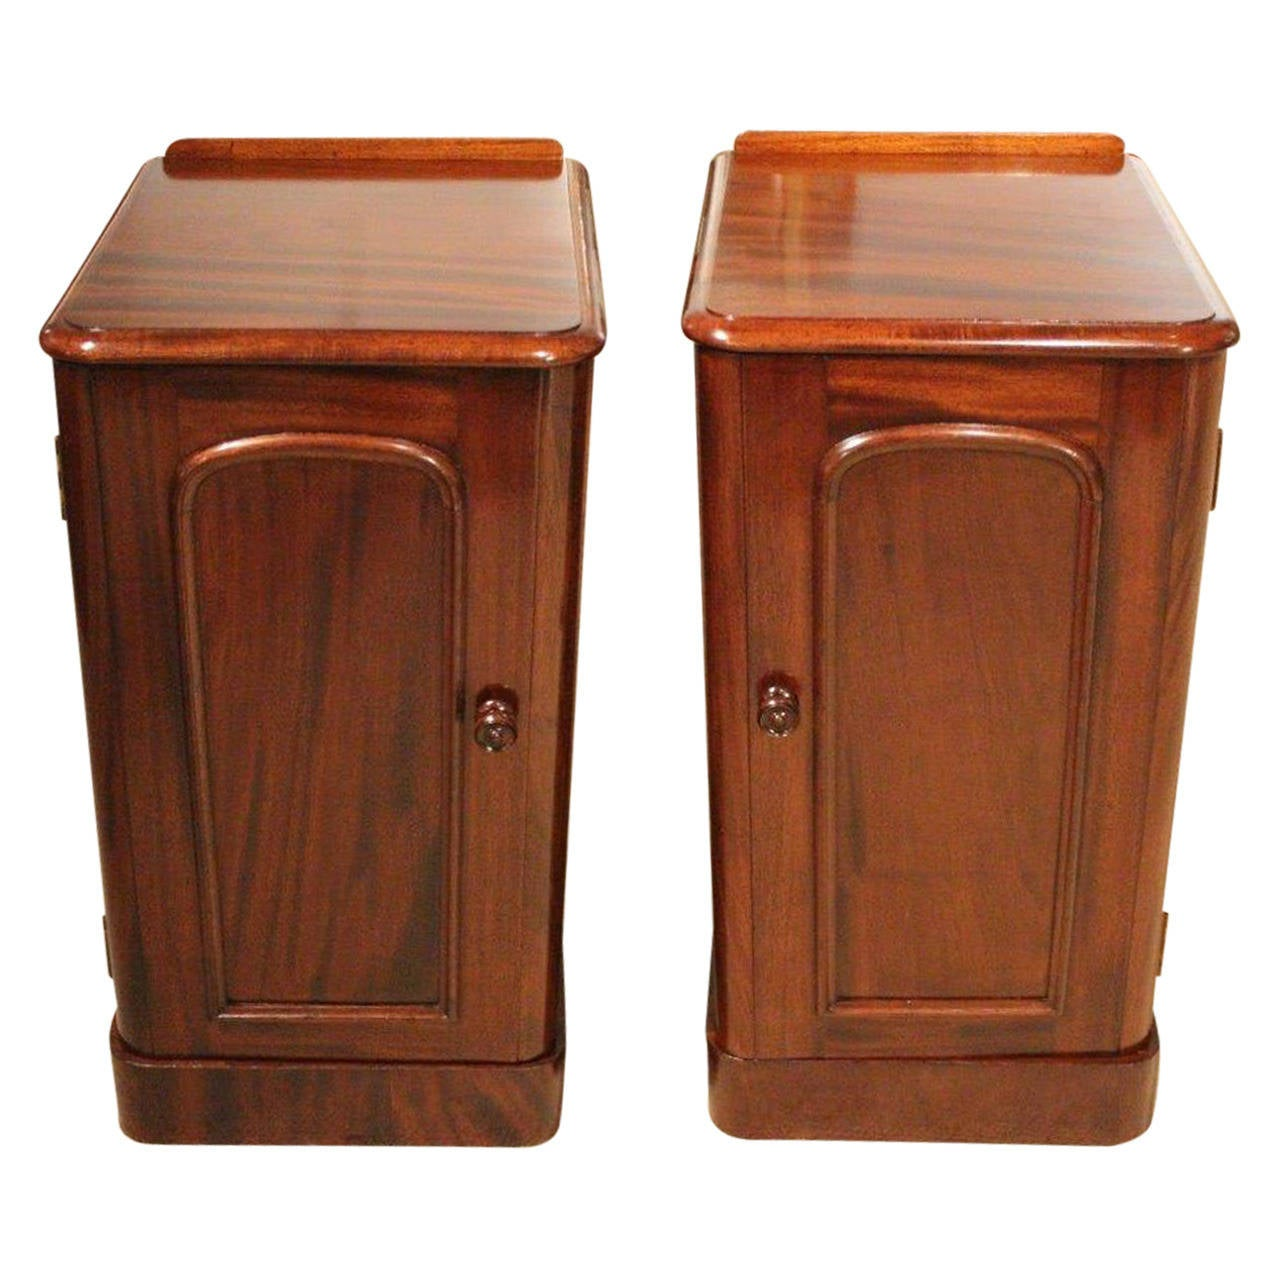 True Pair of Mahogany Victorian Period Antique Bedside Cabinets or  Cupboards 1 - True Pair Of Mahogany Victorian Period Antique Bedside Cabinets Or